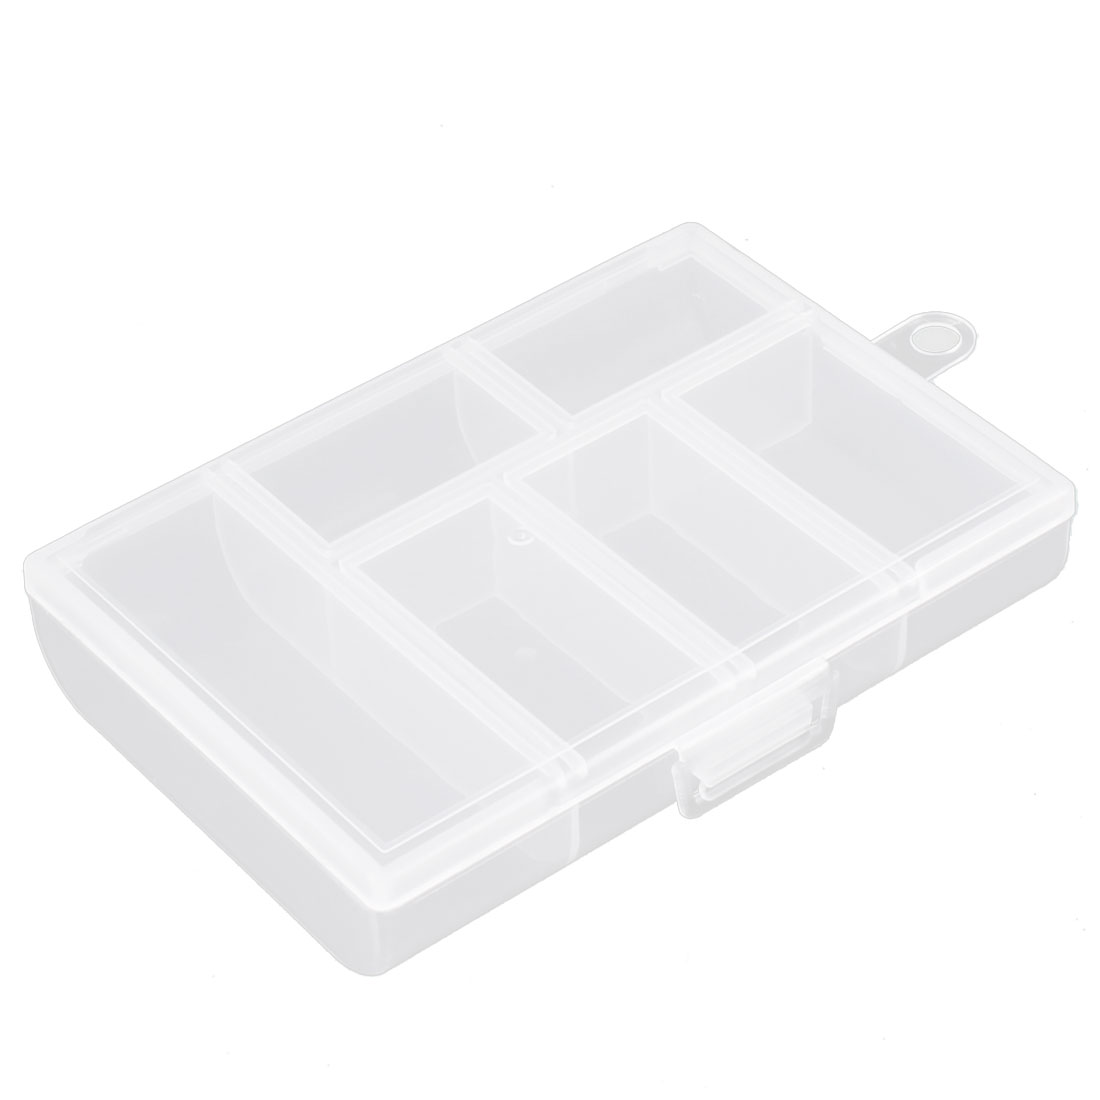 Pills Plastic 6 Compartments Storage Case Box Organizer Conatiner Clear